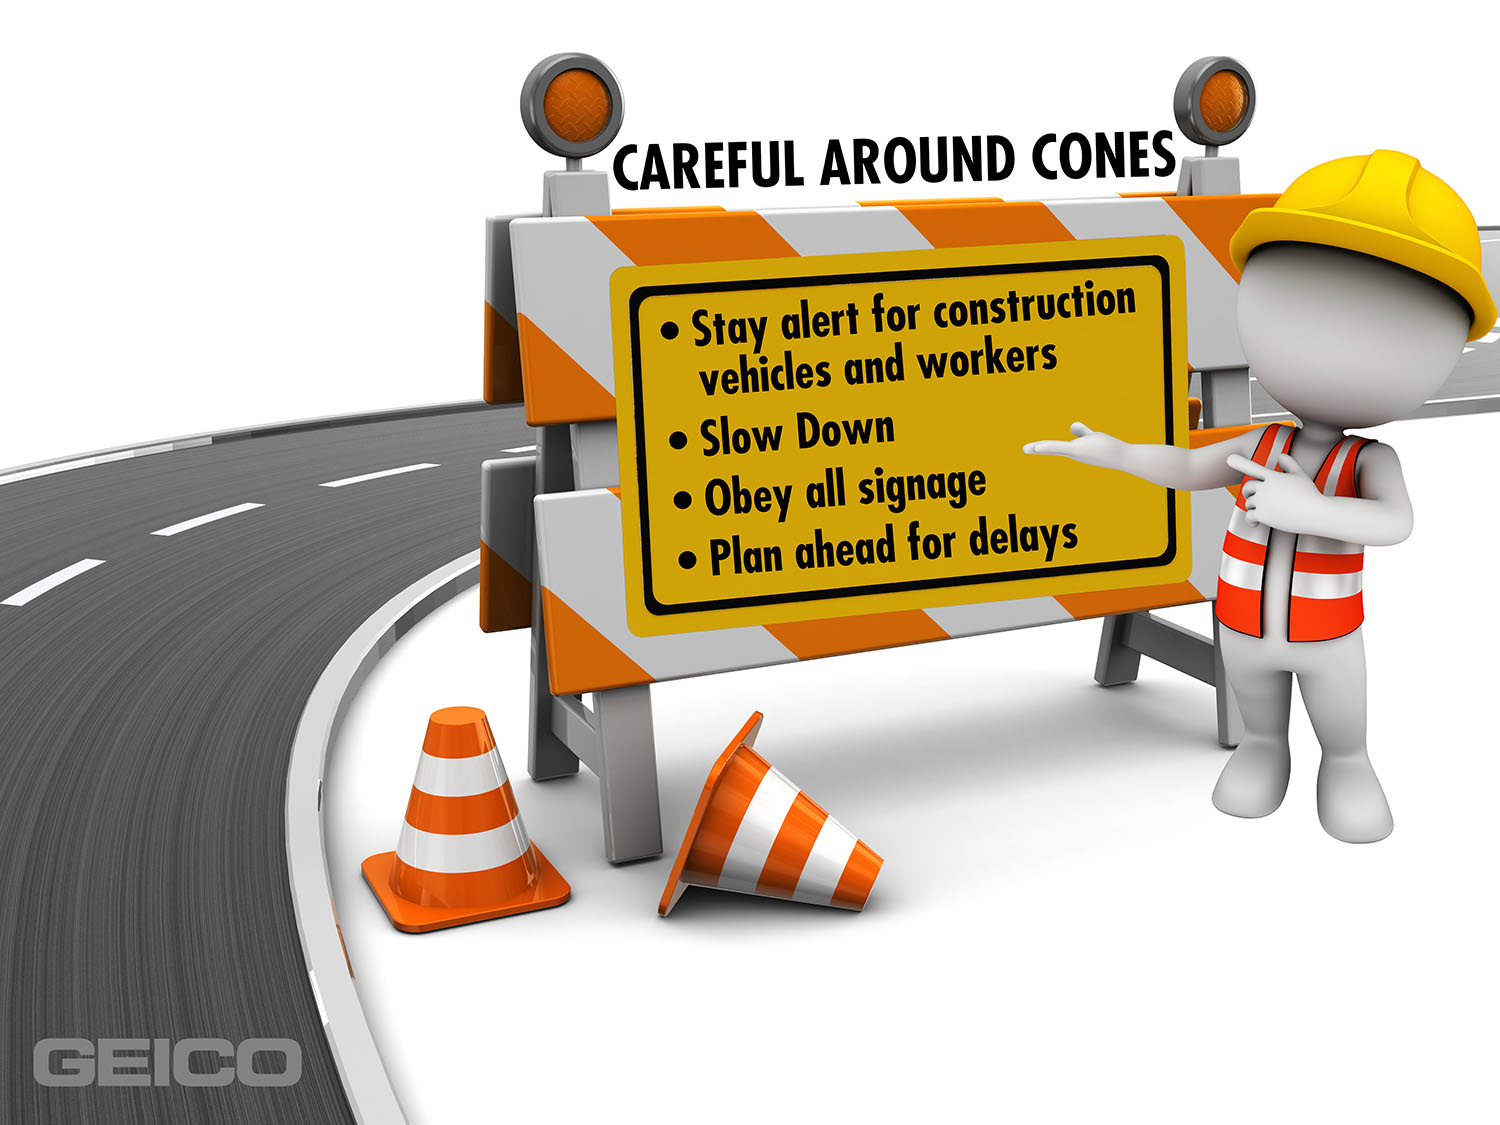 GEICO graphic with work zone safe driving tips